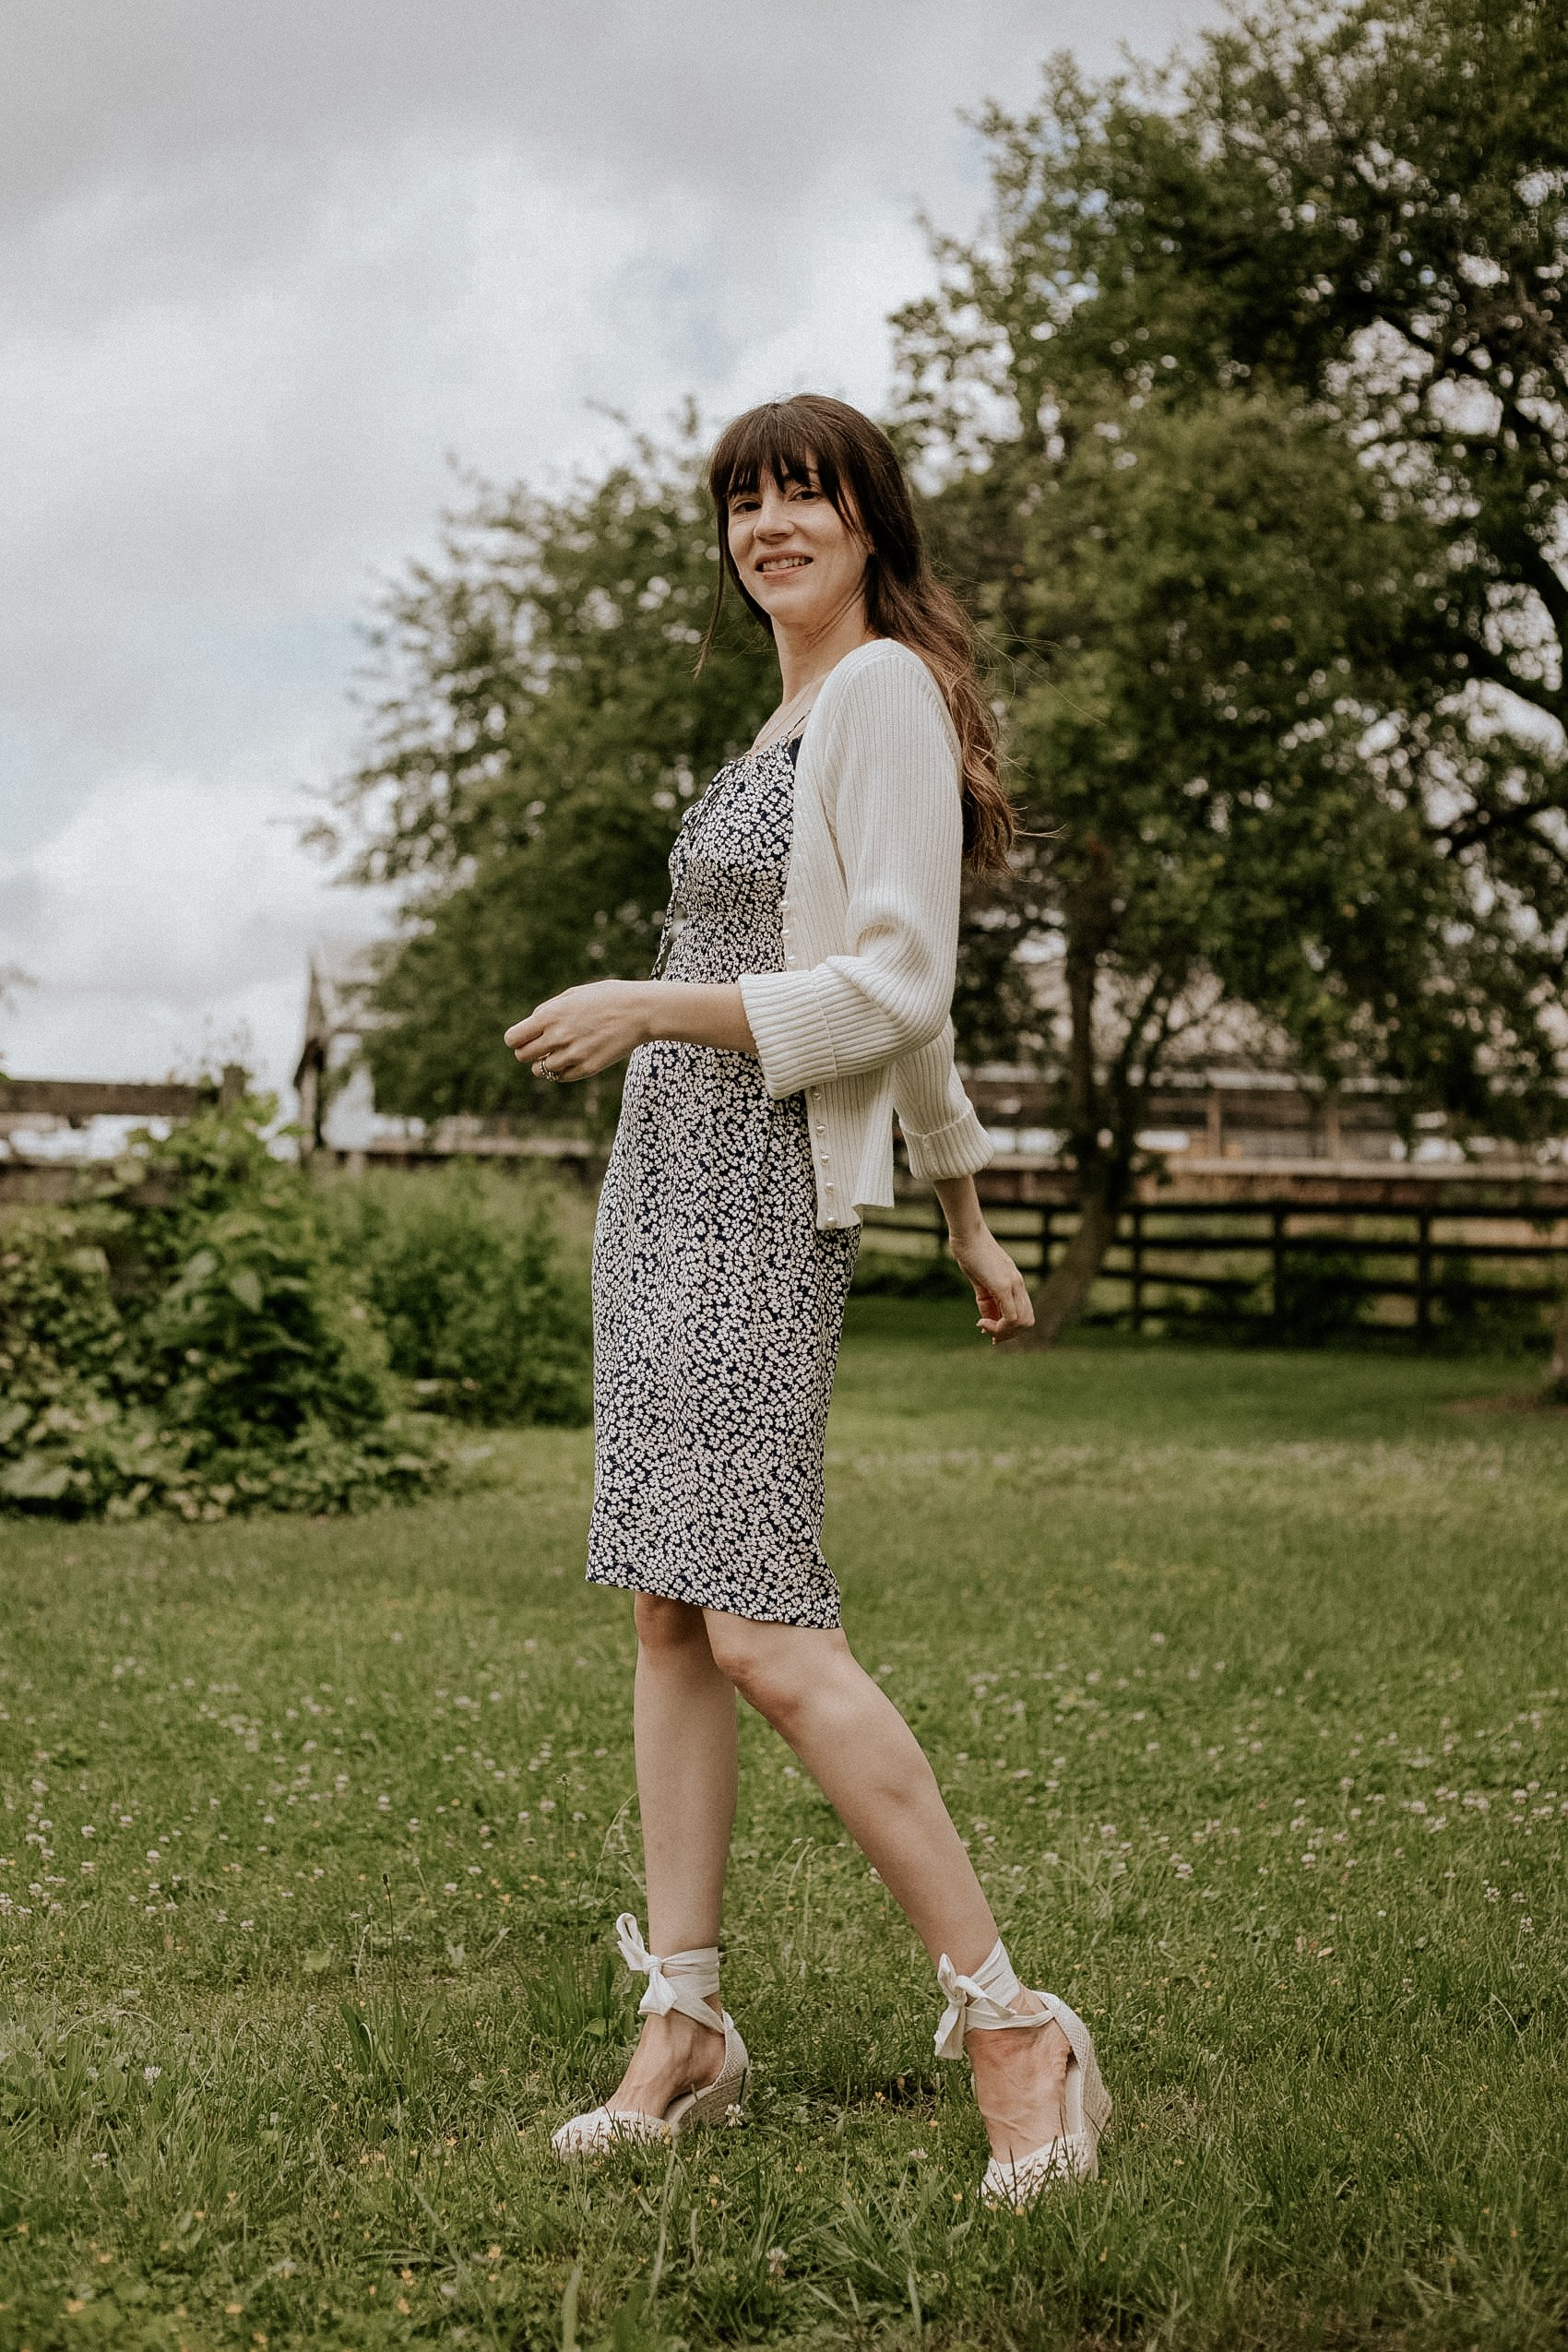 A french girl summer outfit on woman in farm field wearing rouje dress and espadrilles